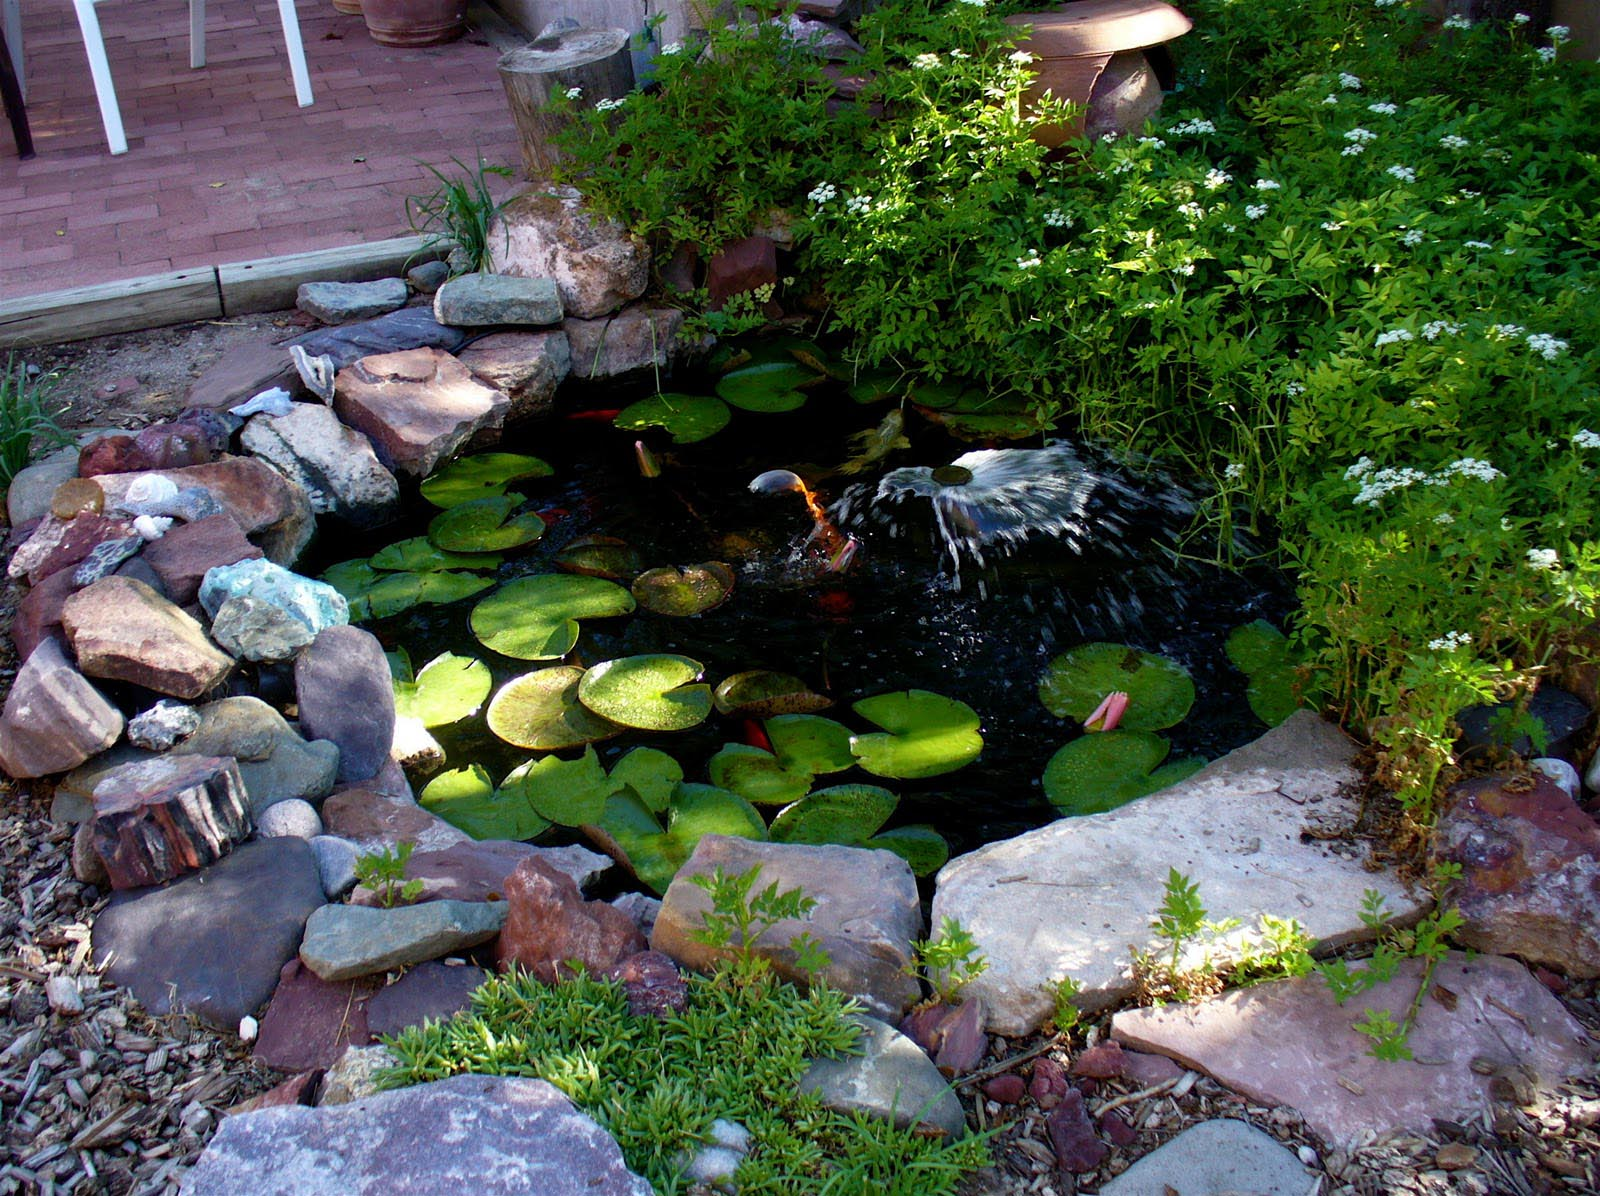 Garden fish pond ideas backyard design ideas for Small garden fish pond designs